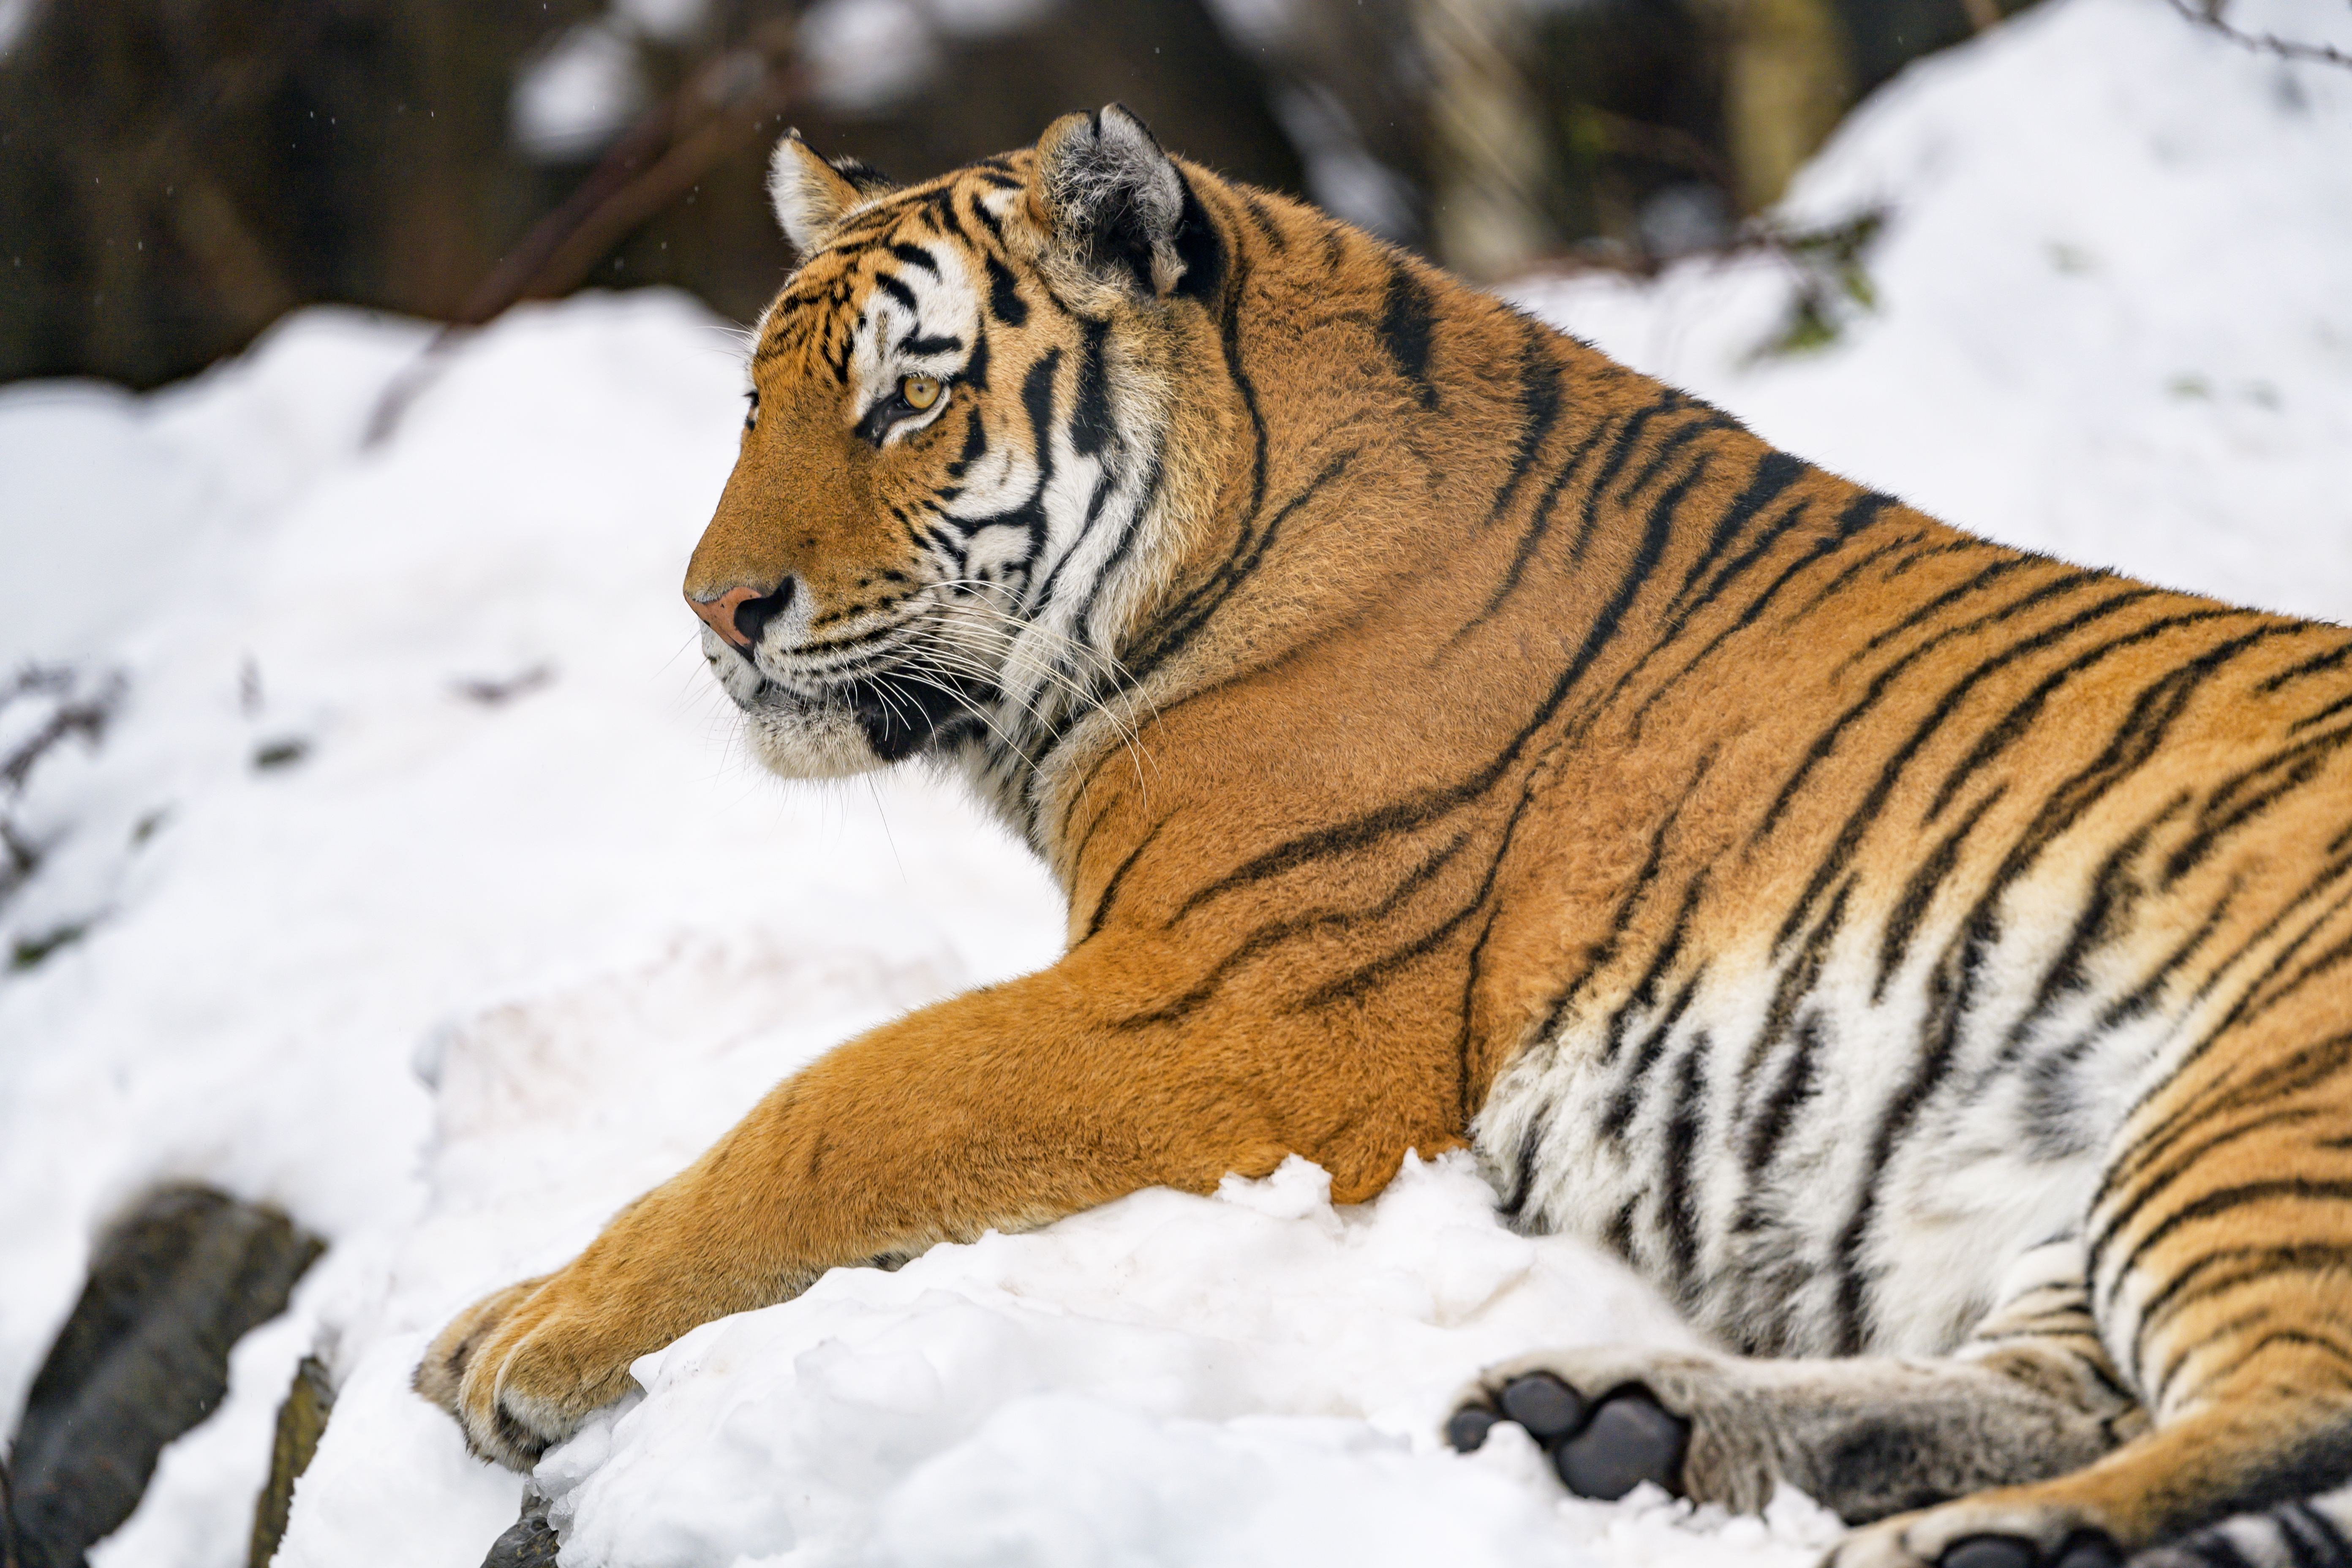 128652 download wallpaper Animals, Tiger, Animal, Big Cat, Snow screensavers and pictures for free